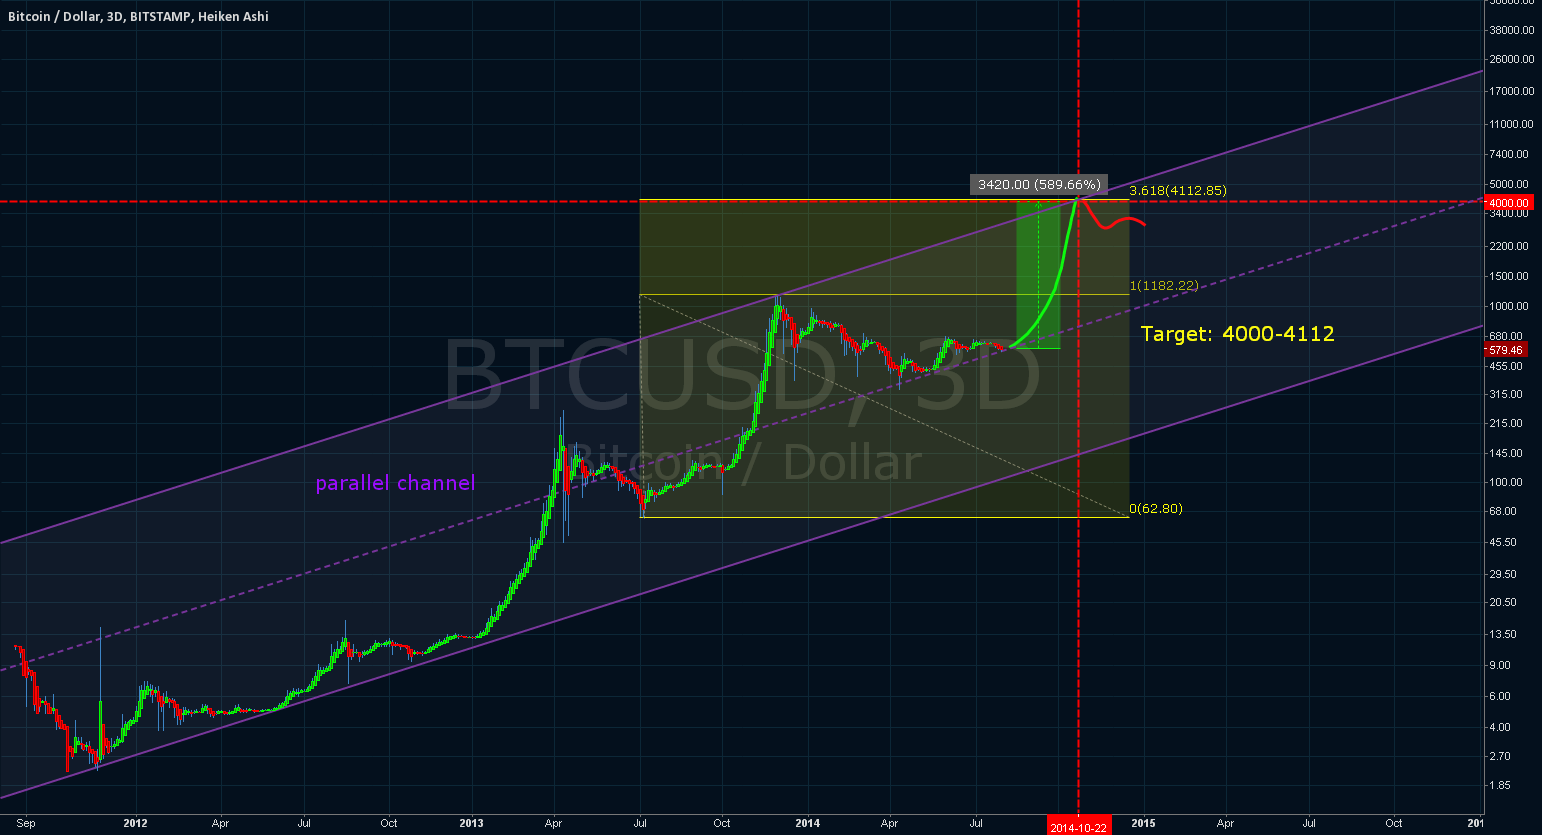 parallel channel   target: 4000+